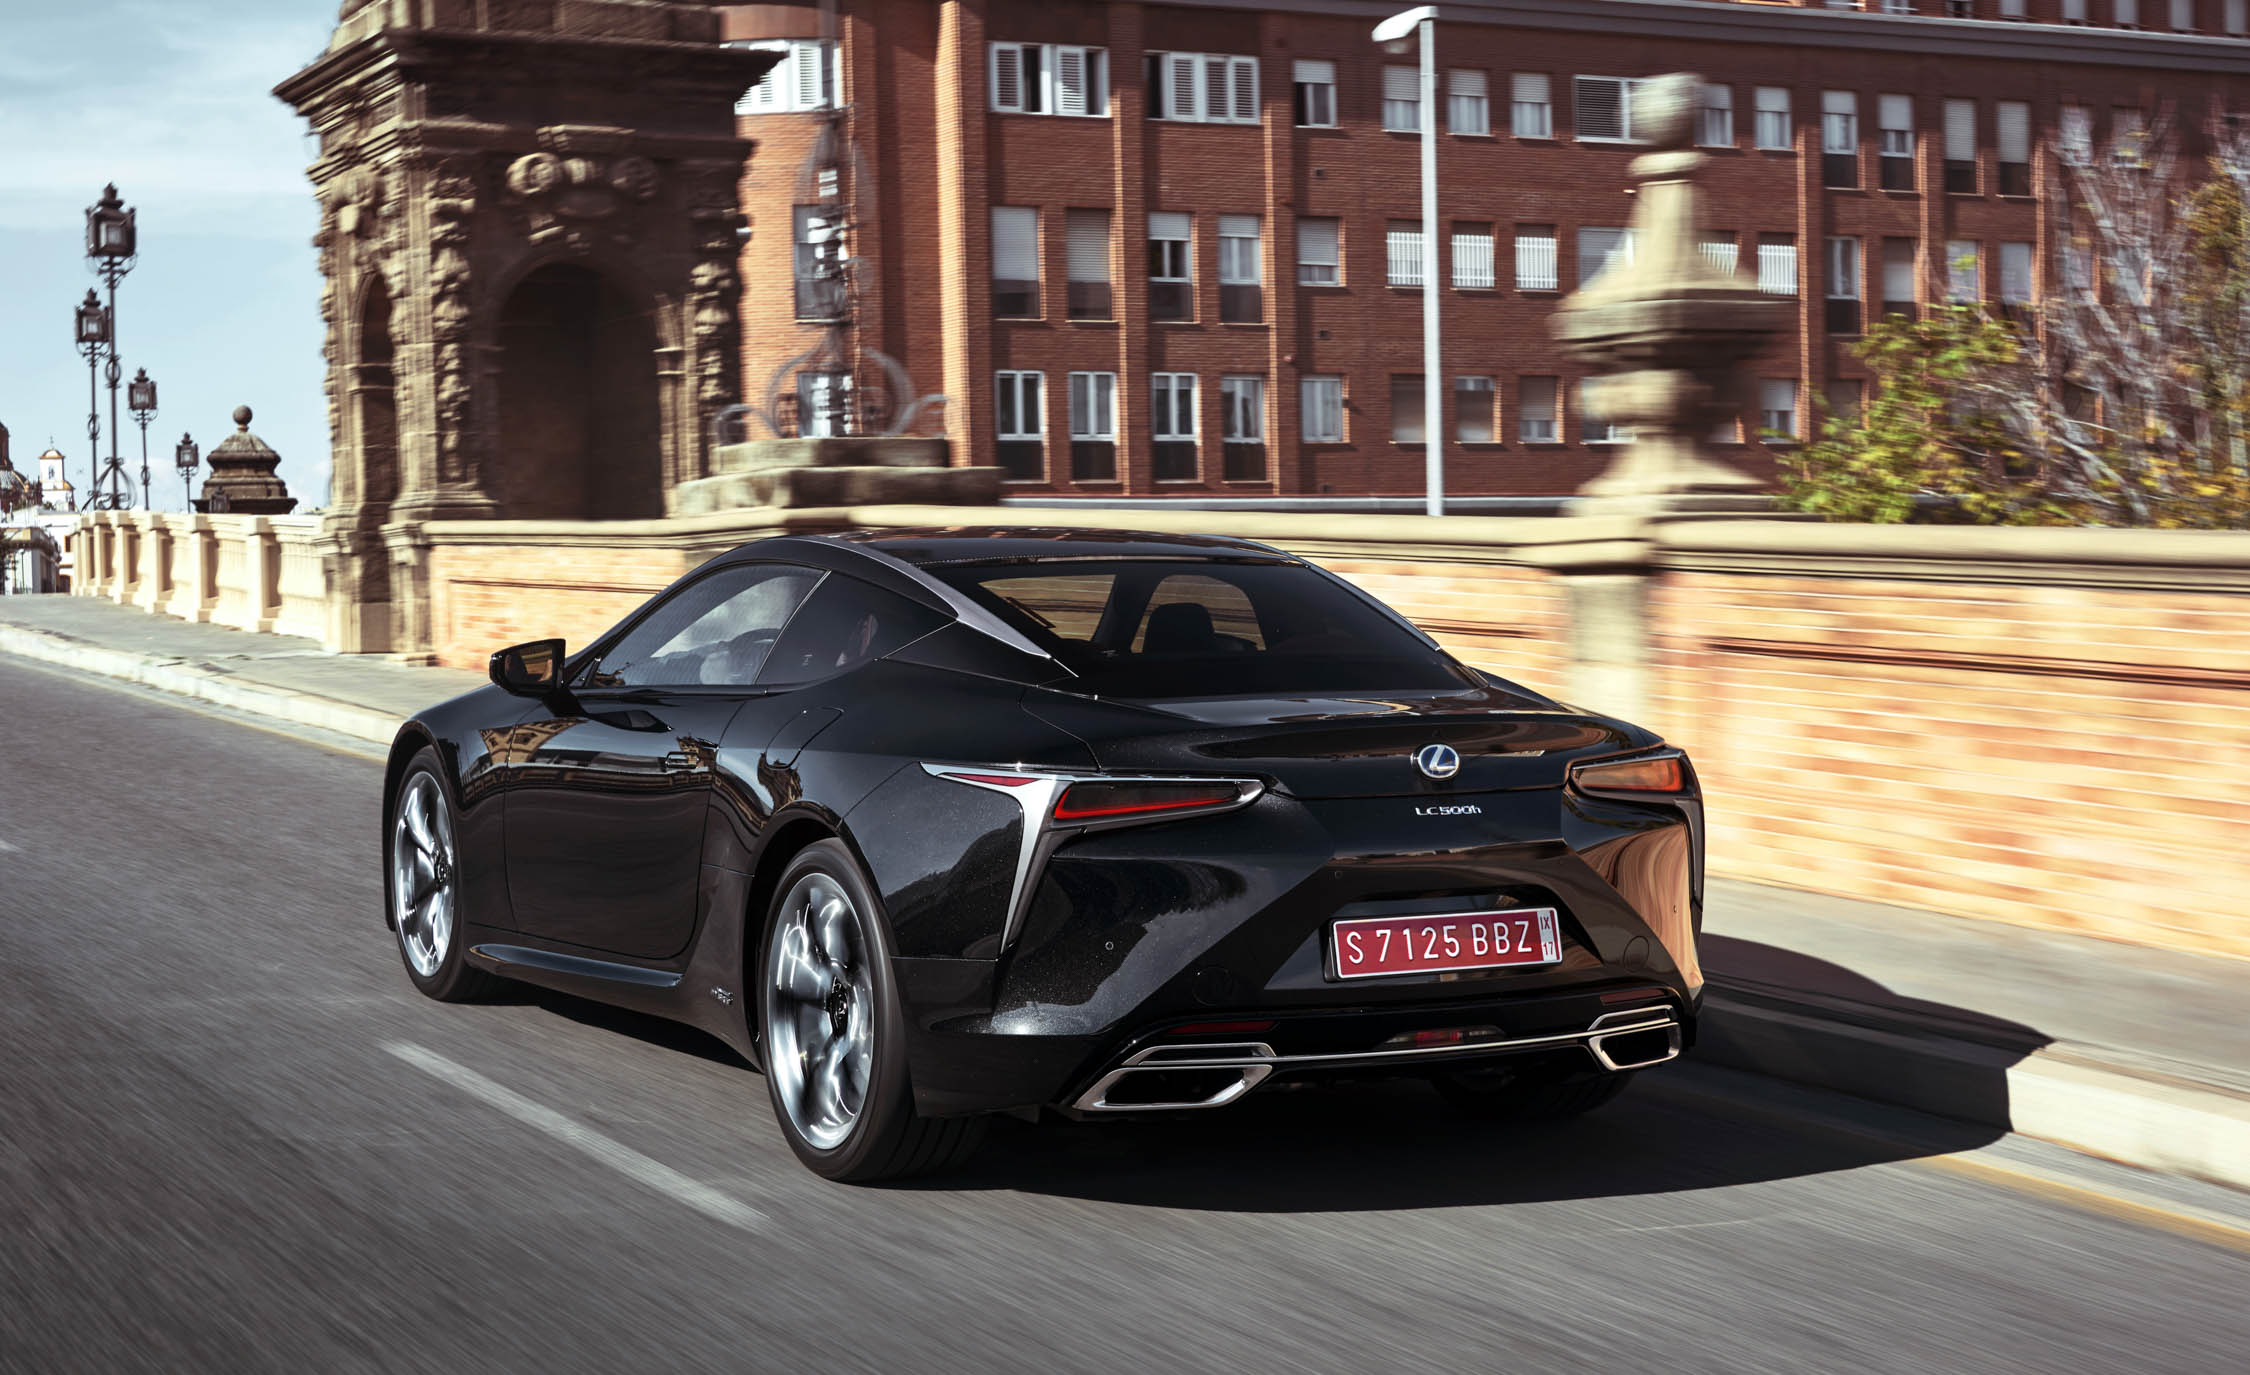 2018 Lexus Lc 500h Black Rear And Side View (Photo 47 of 84)